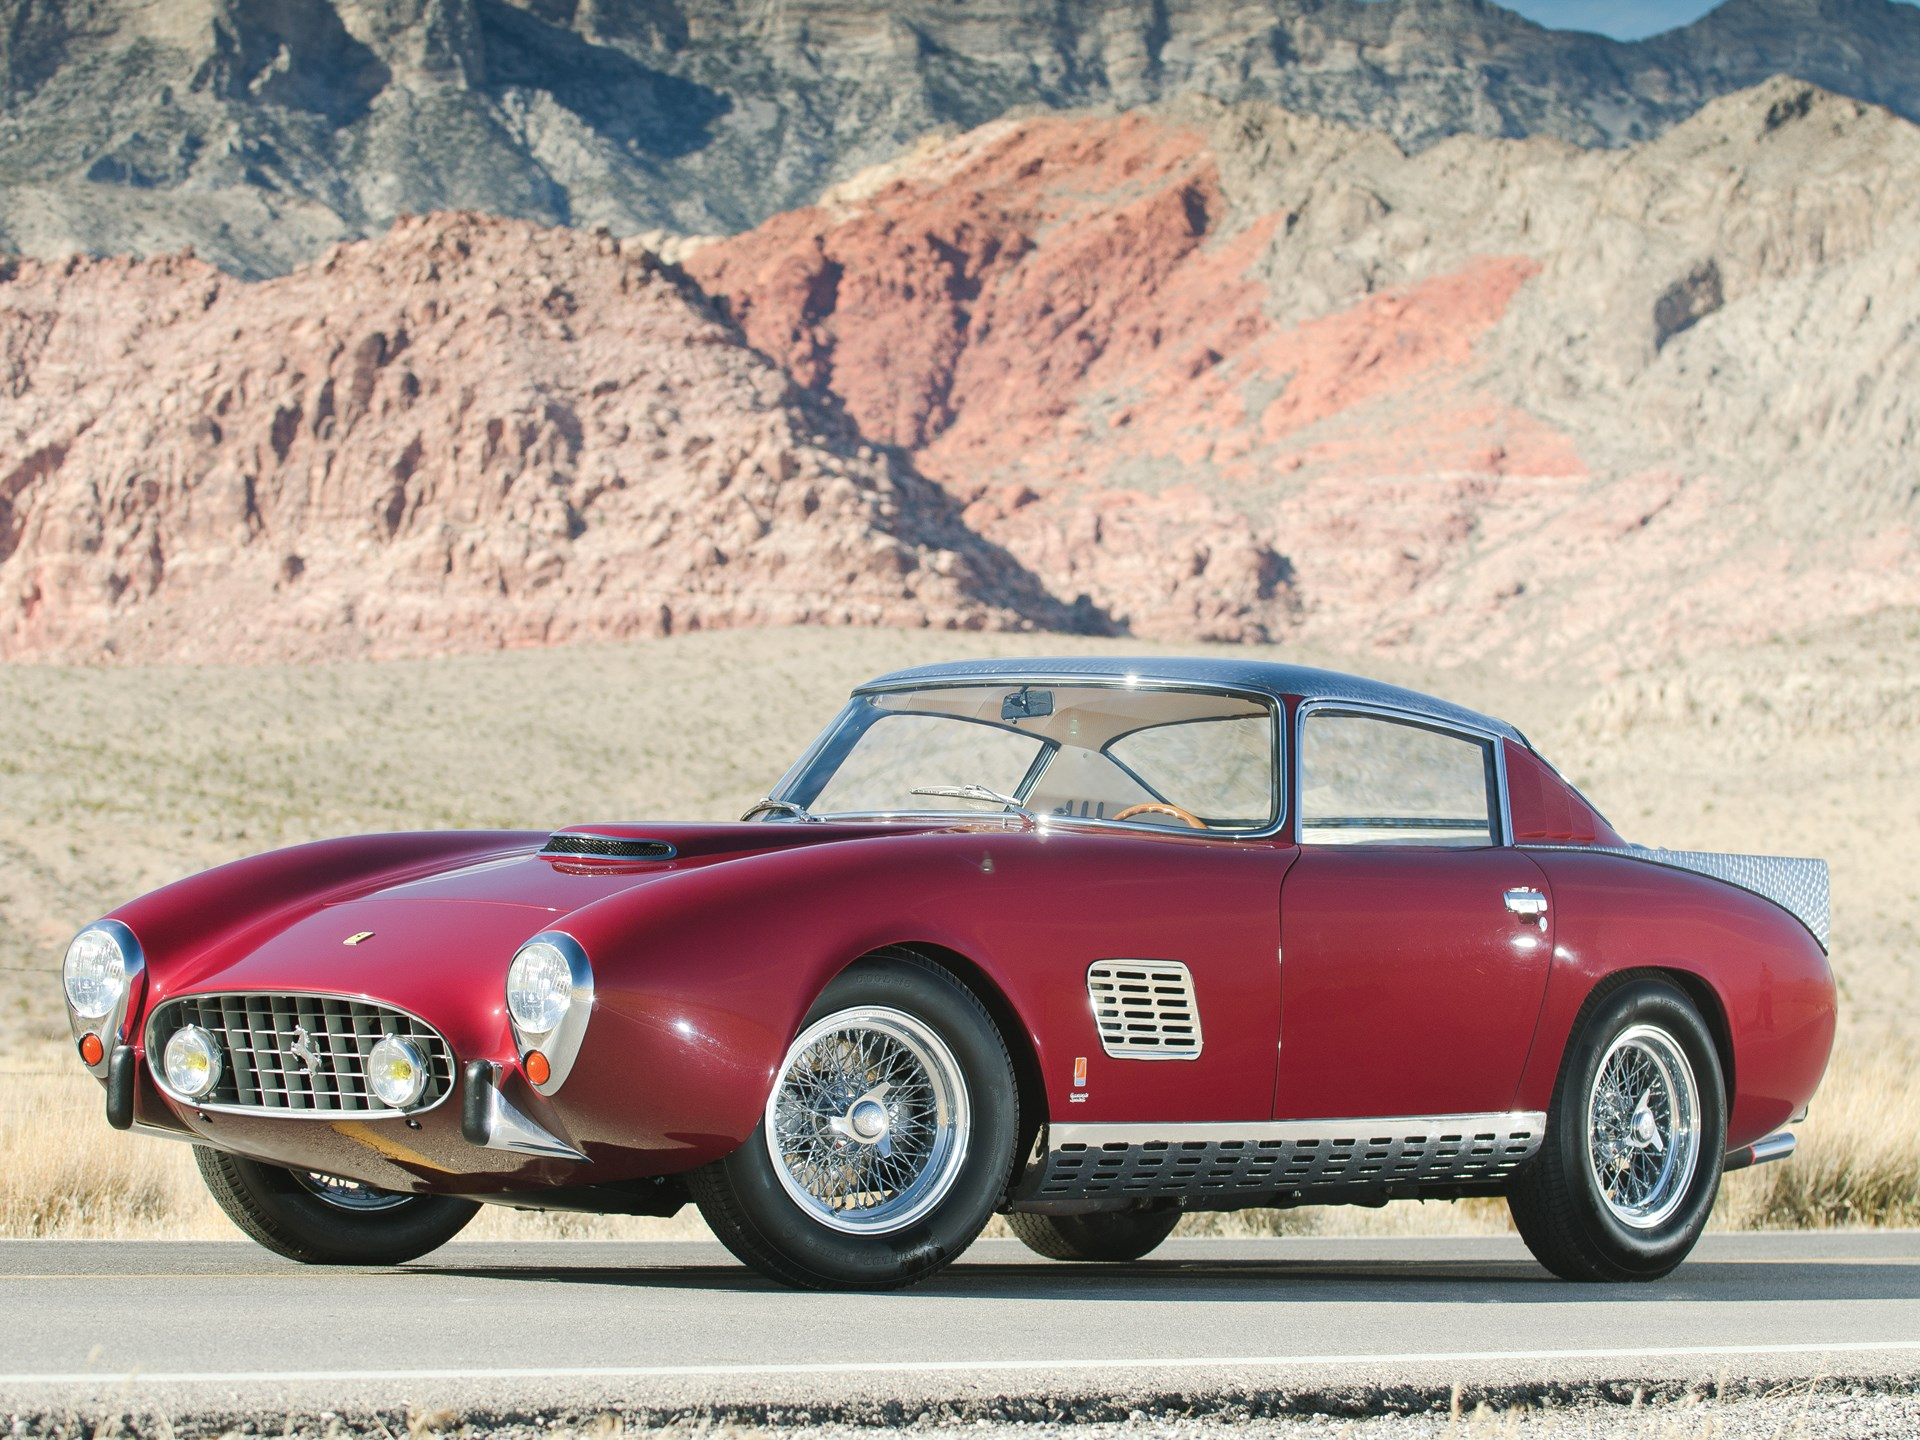 Ferrari 410 superamerica for sale